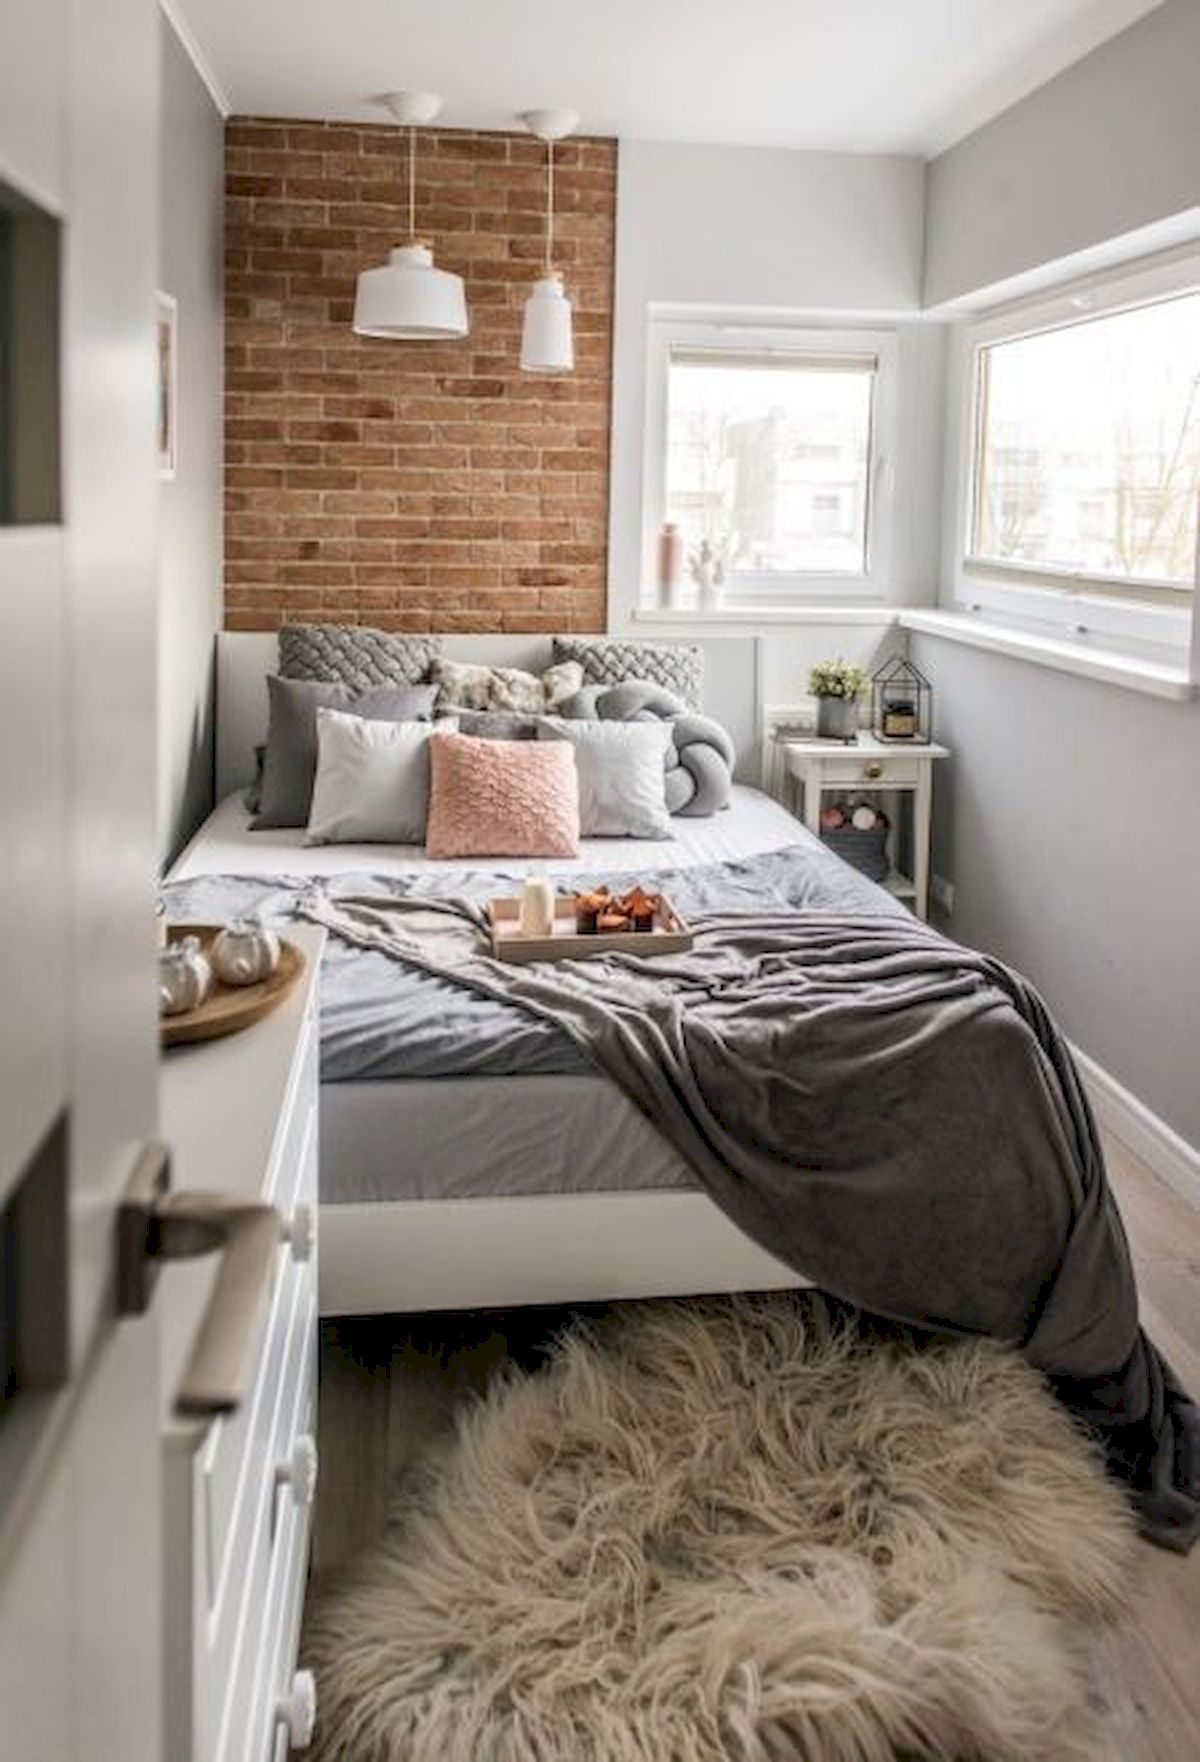 49 Cool Little Bedroom Ideas That Are